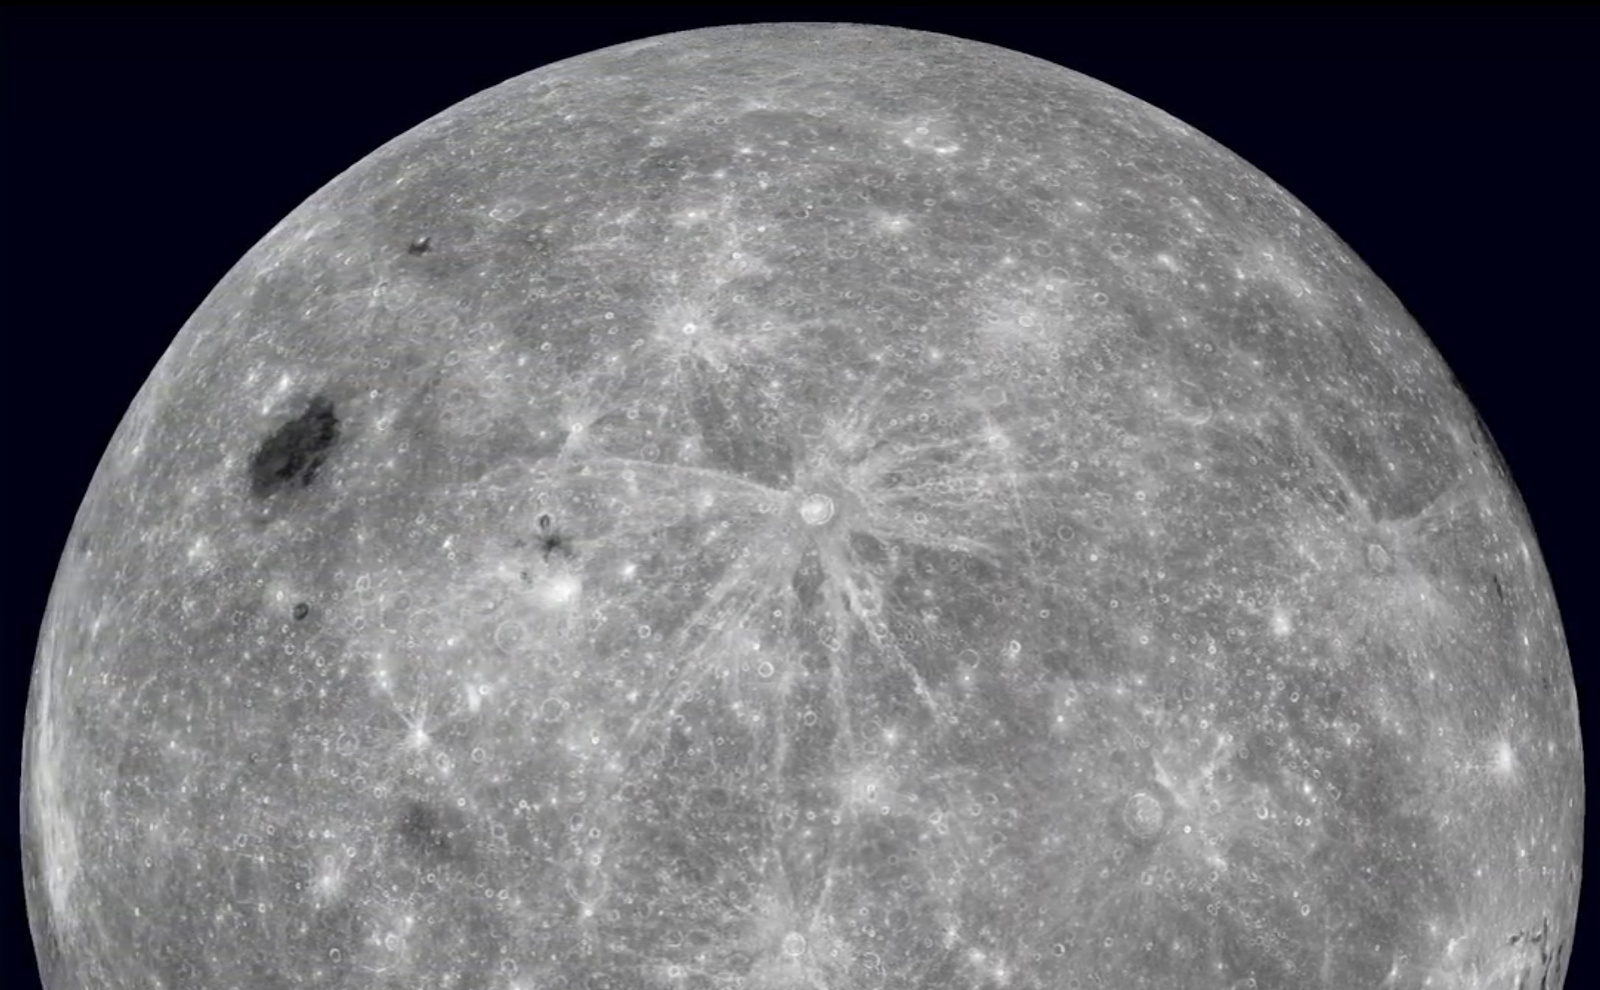 NASA has chosen three scientific payloads under its Commercial Lunar Payload Services initiative, and two will be landing on the far side of the Moon..